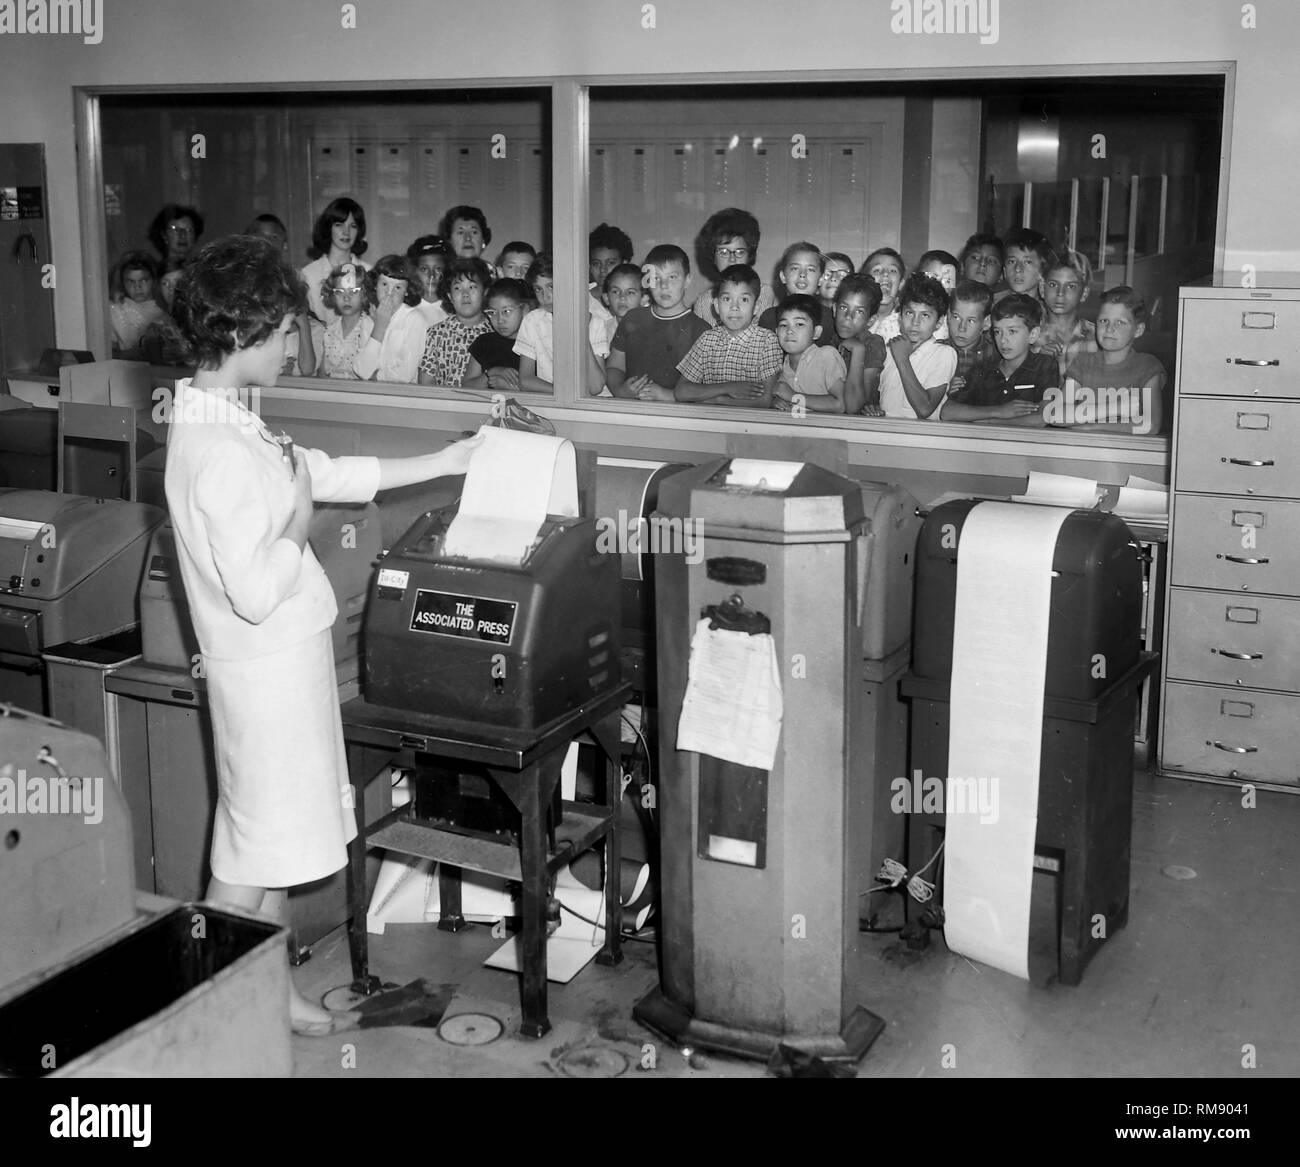 A  touring group of school children on a field trip watch through a window as a woman gathers transmission copy from wire machines for editing in a Chicago newsroom, ca. 1965. - Stock Image